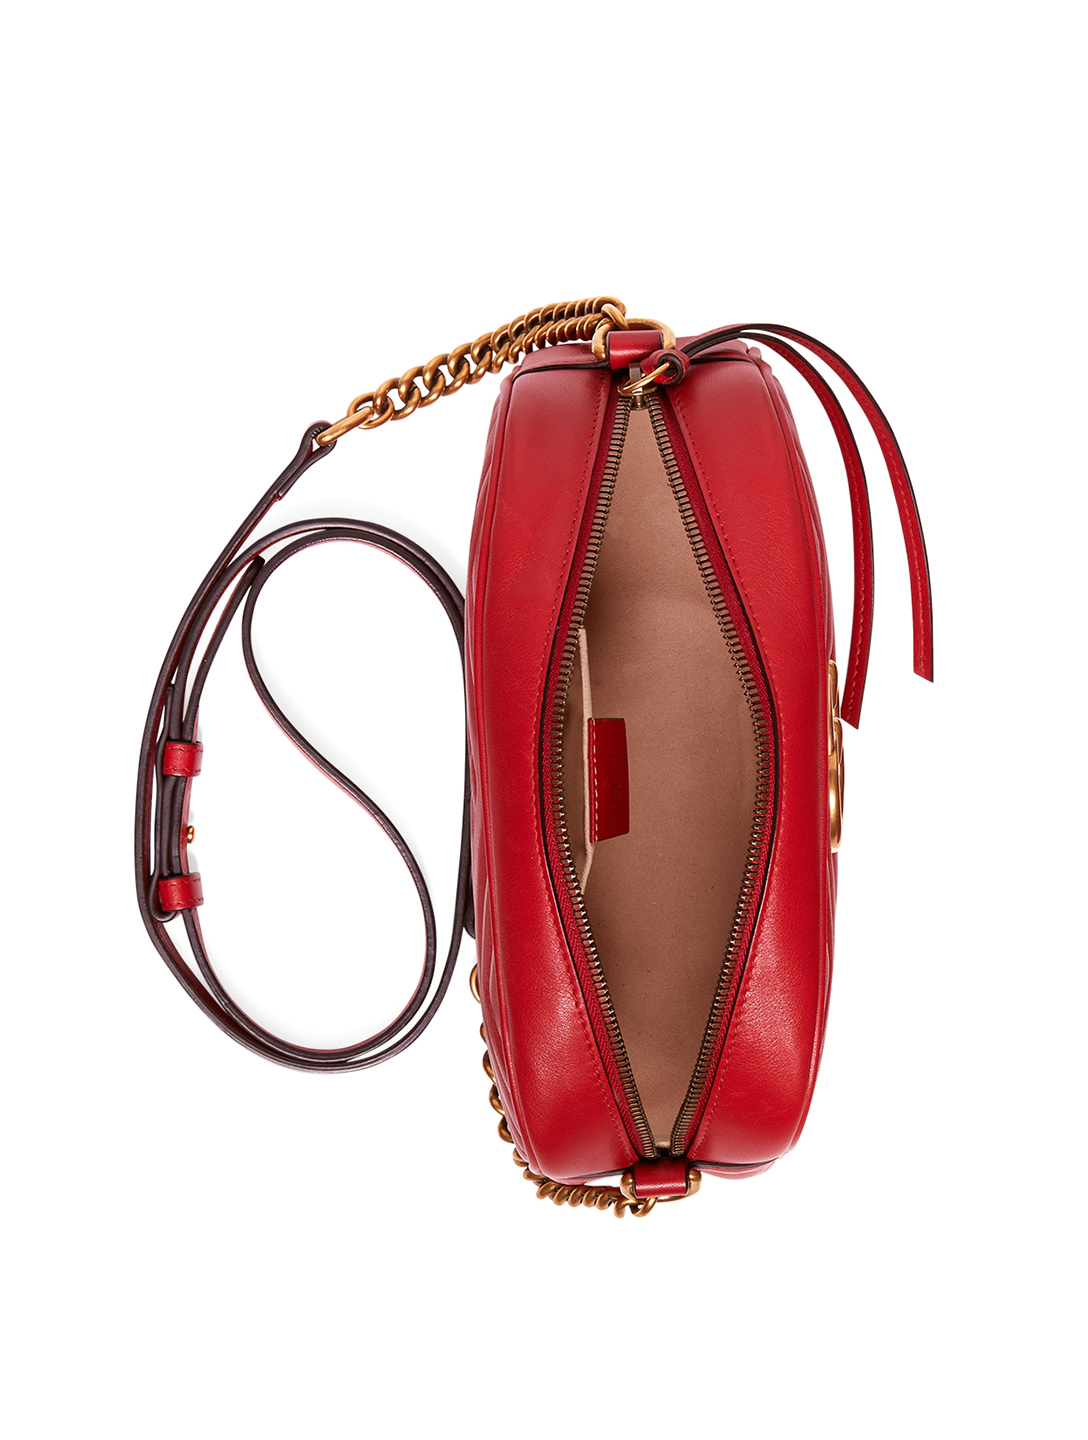 GUCCI Small GG Marmont Leather Chain Shoulder Bag Women's Red